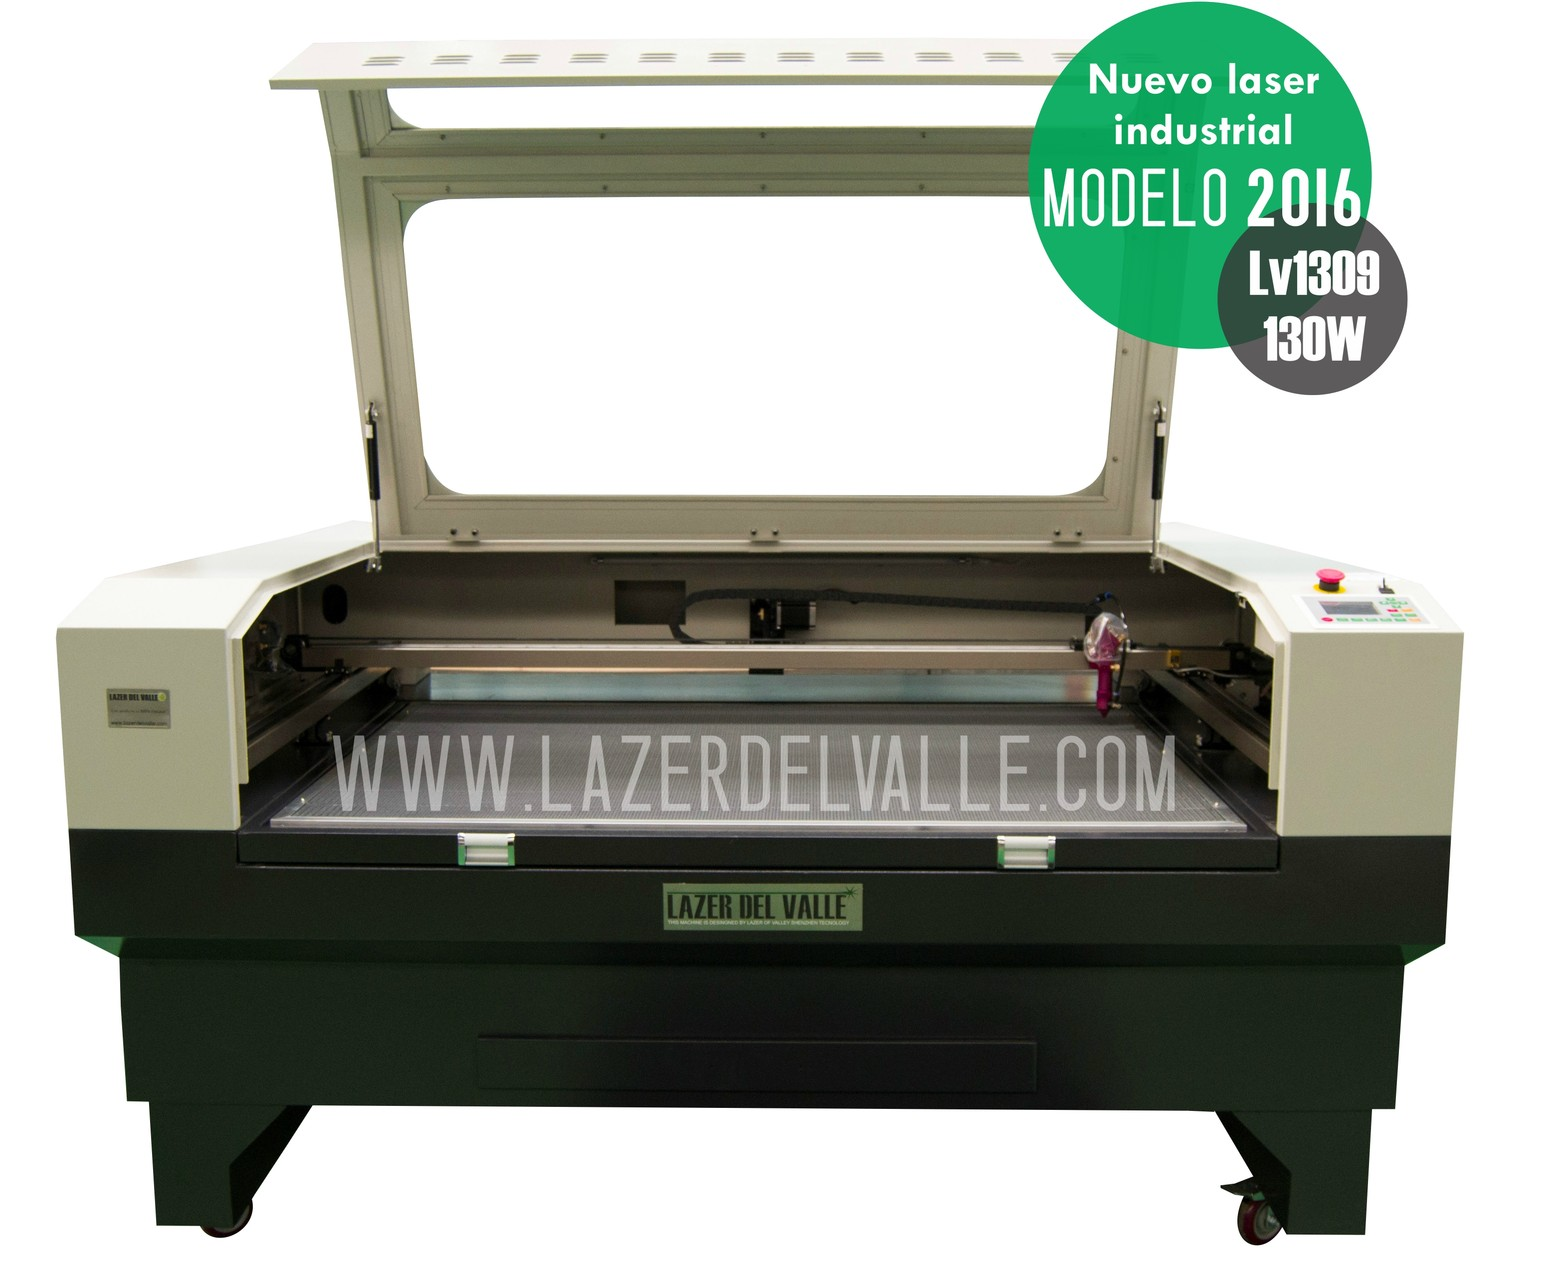 maquina laser industrial